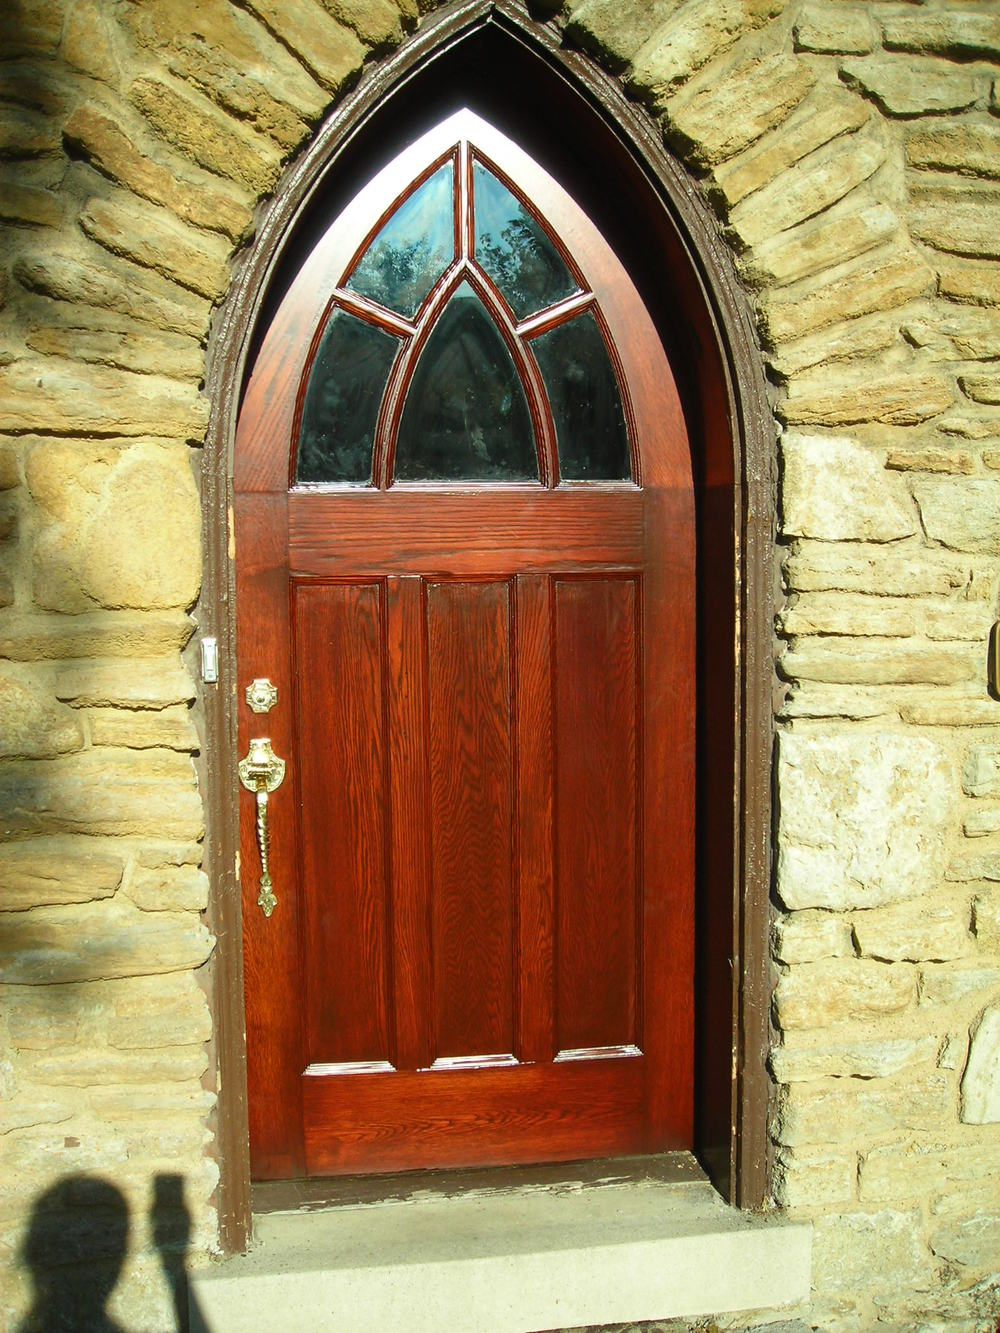 Copy of exterior-door-wood-wooden-refinish-refinishing-weathered